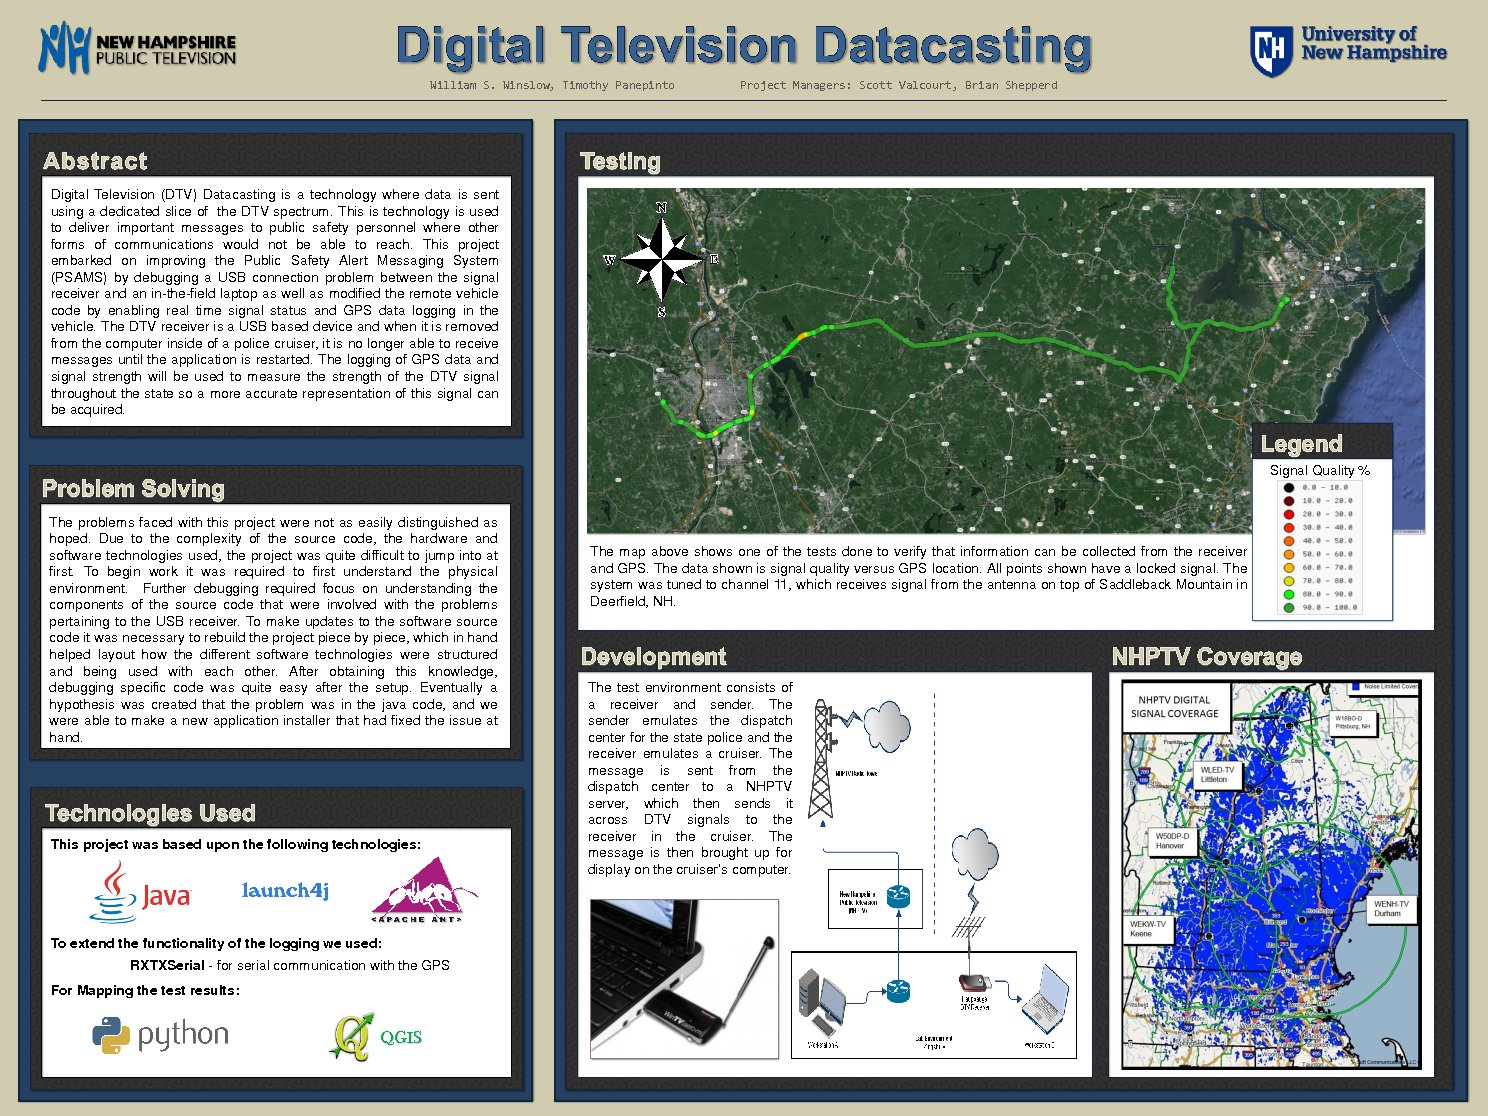 Digital Television Datacasting by wsk5